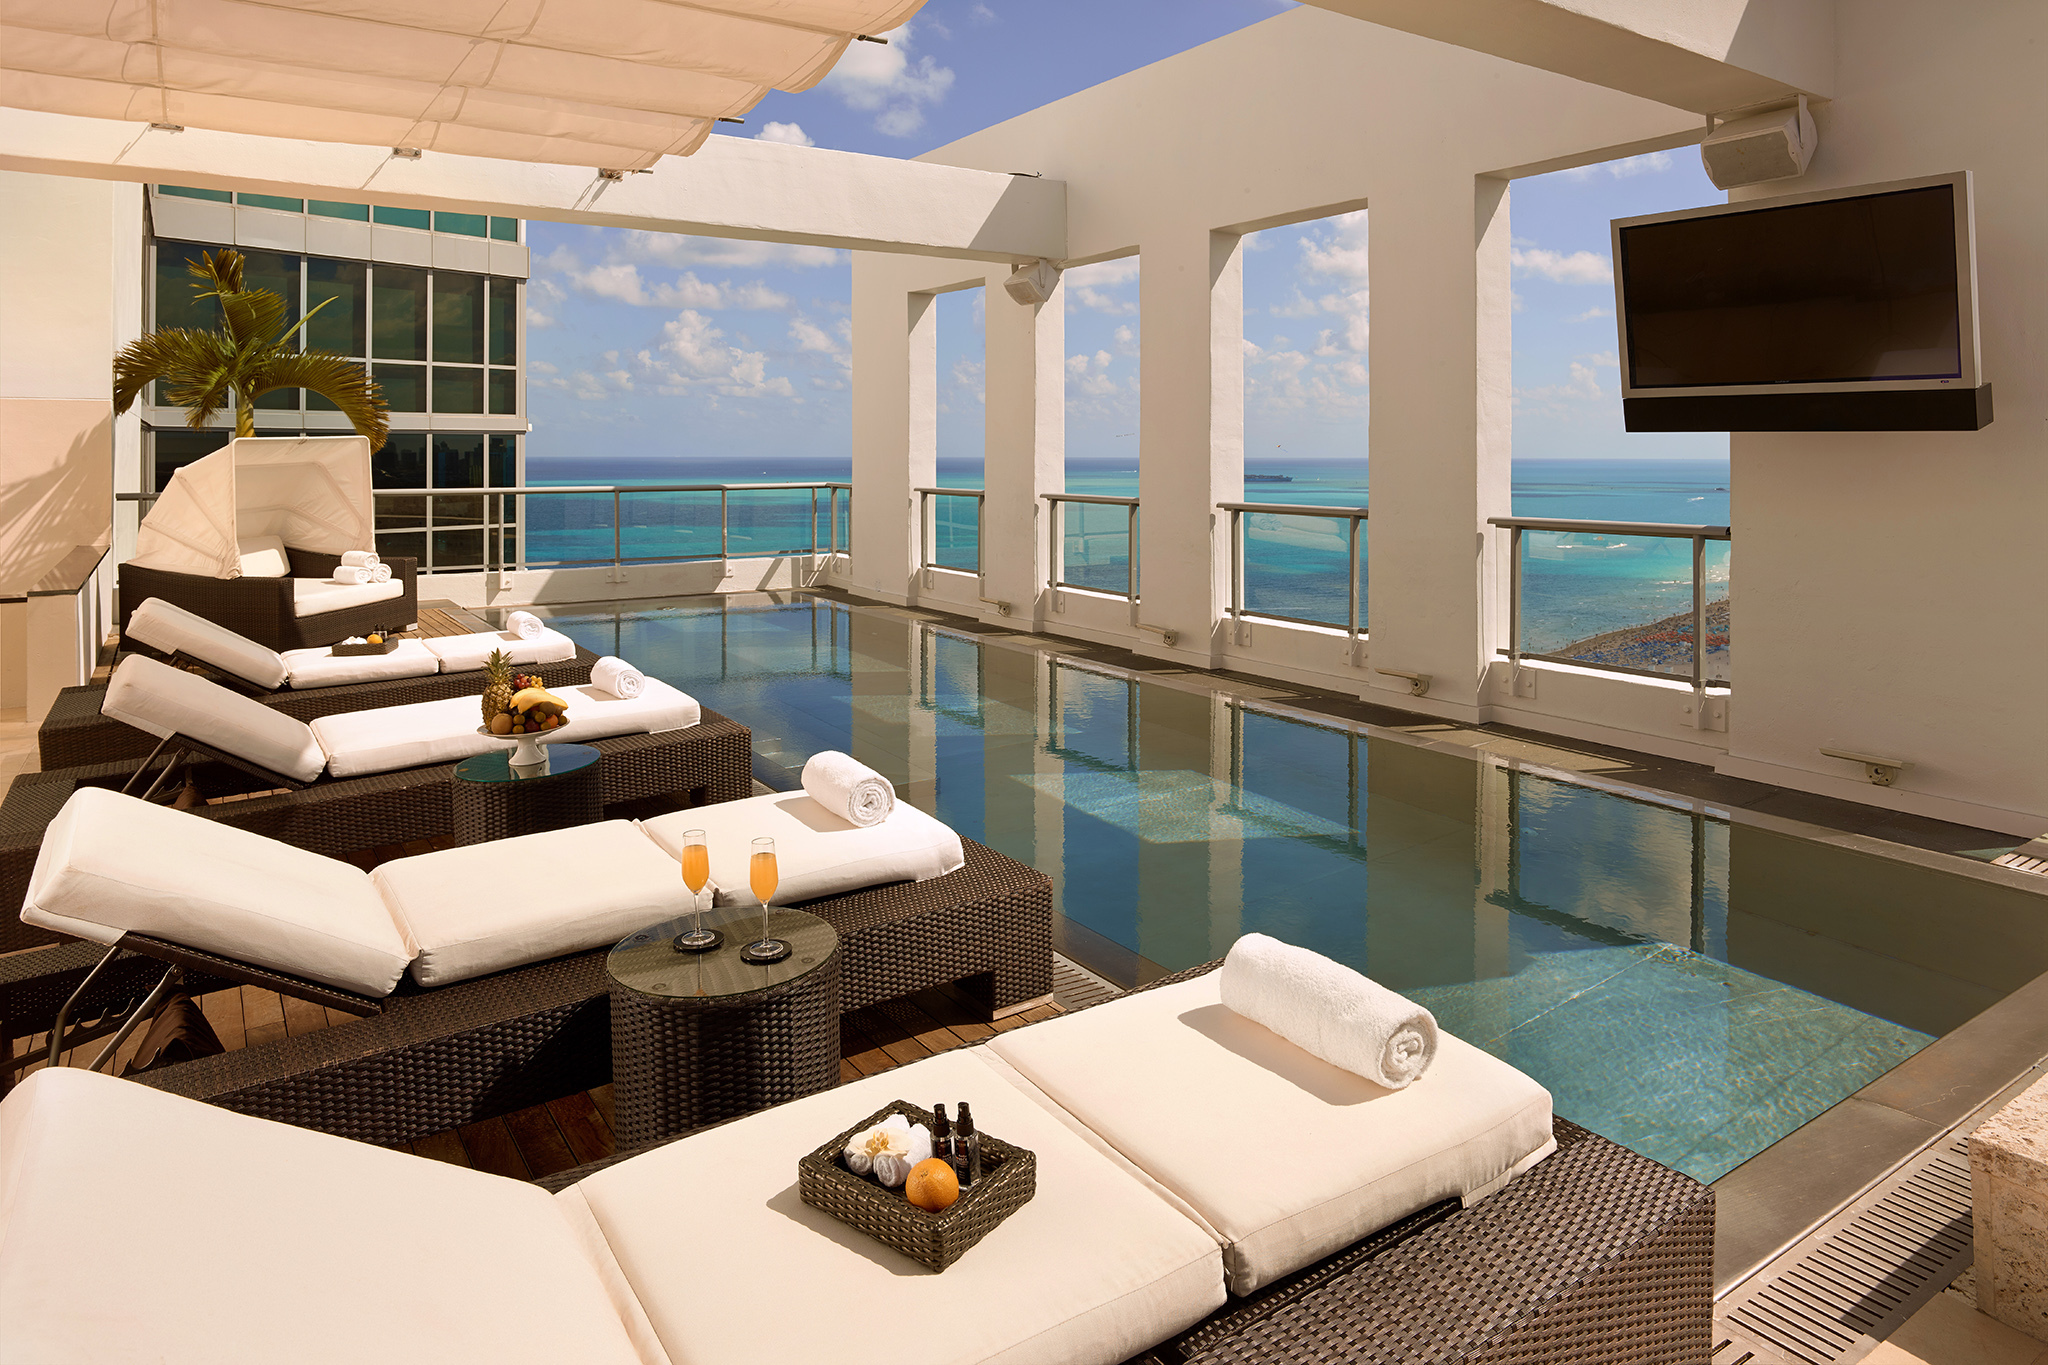 The Setai in Miami Beach